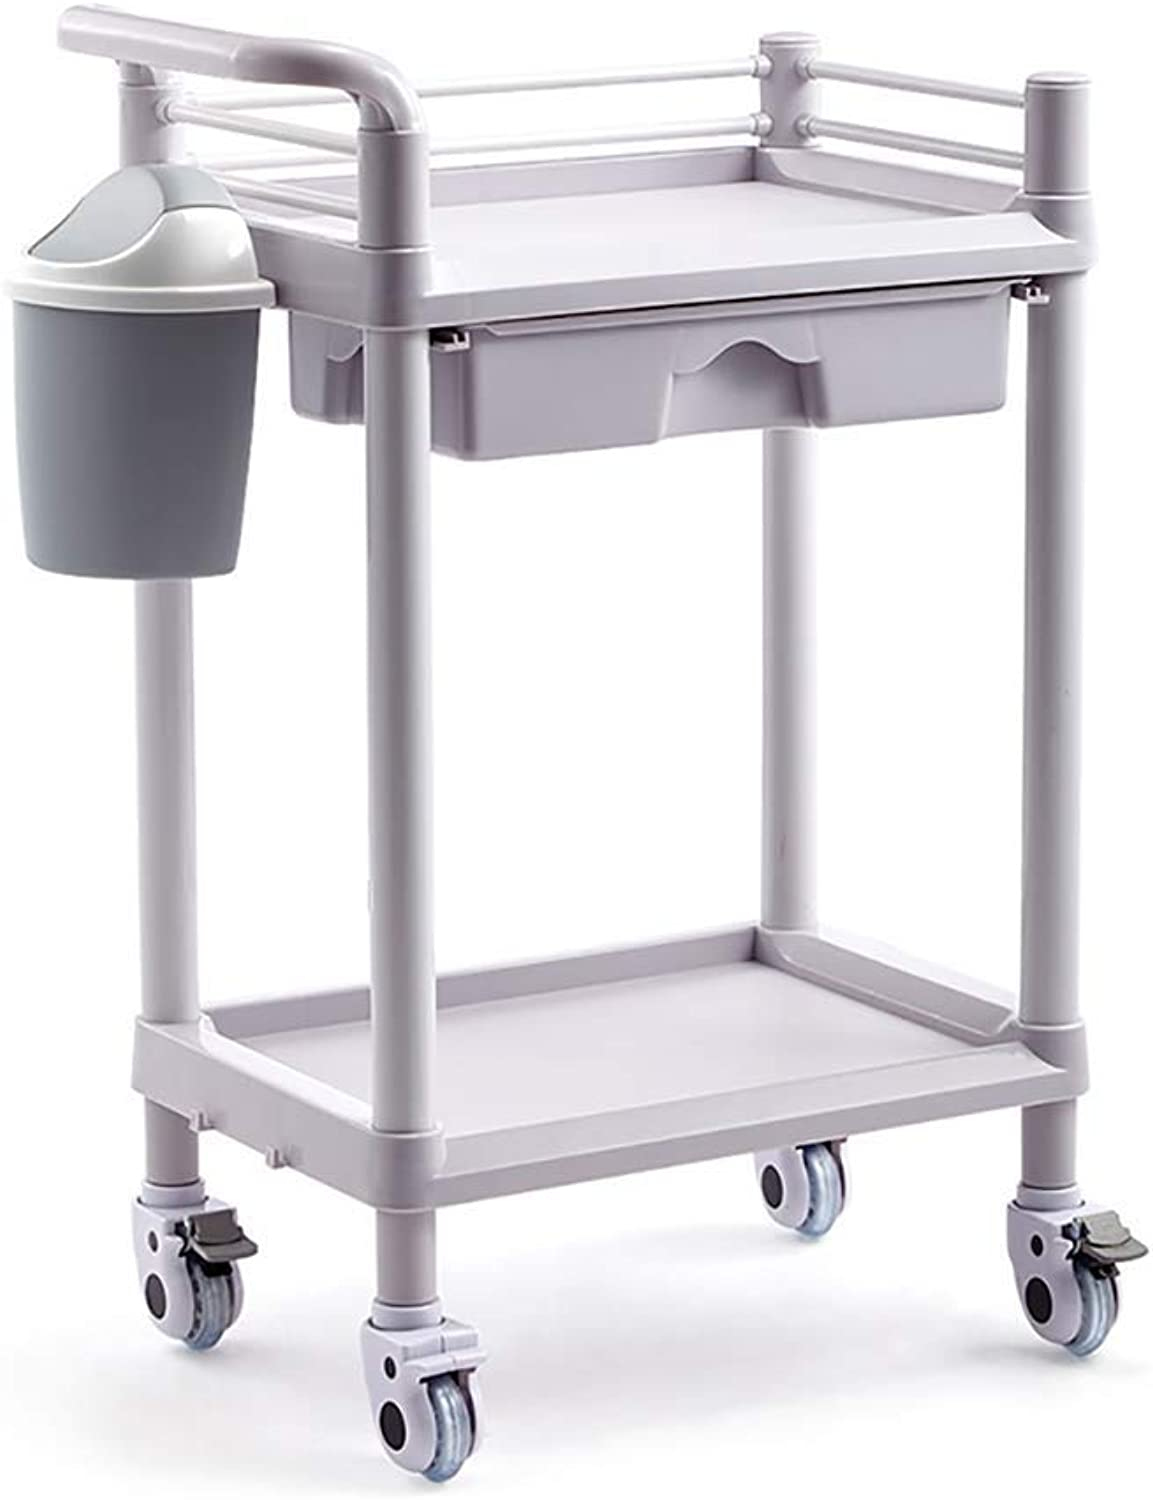 Work Home Cart Tool Beauty Cart with Drawer, Work Home Utility Cart with Dirt Bucket, 2 3 Tier Hairdressing SPA Rolling Trolley with Universal Brake Wheel (Size   2 Tier)